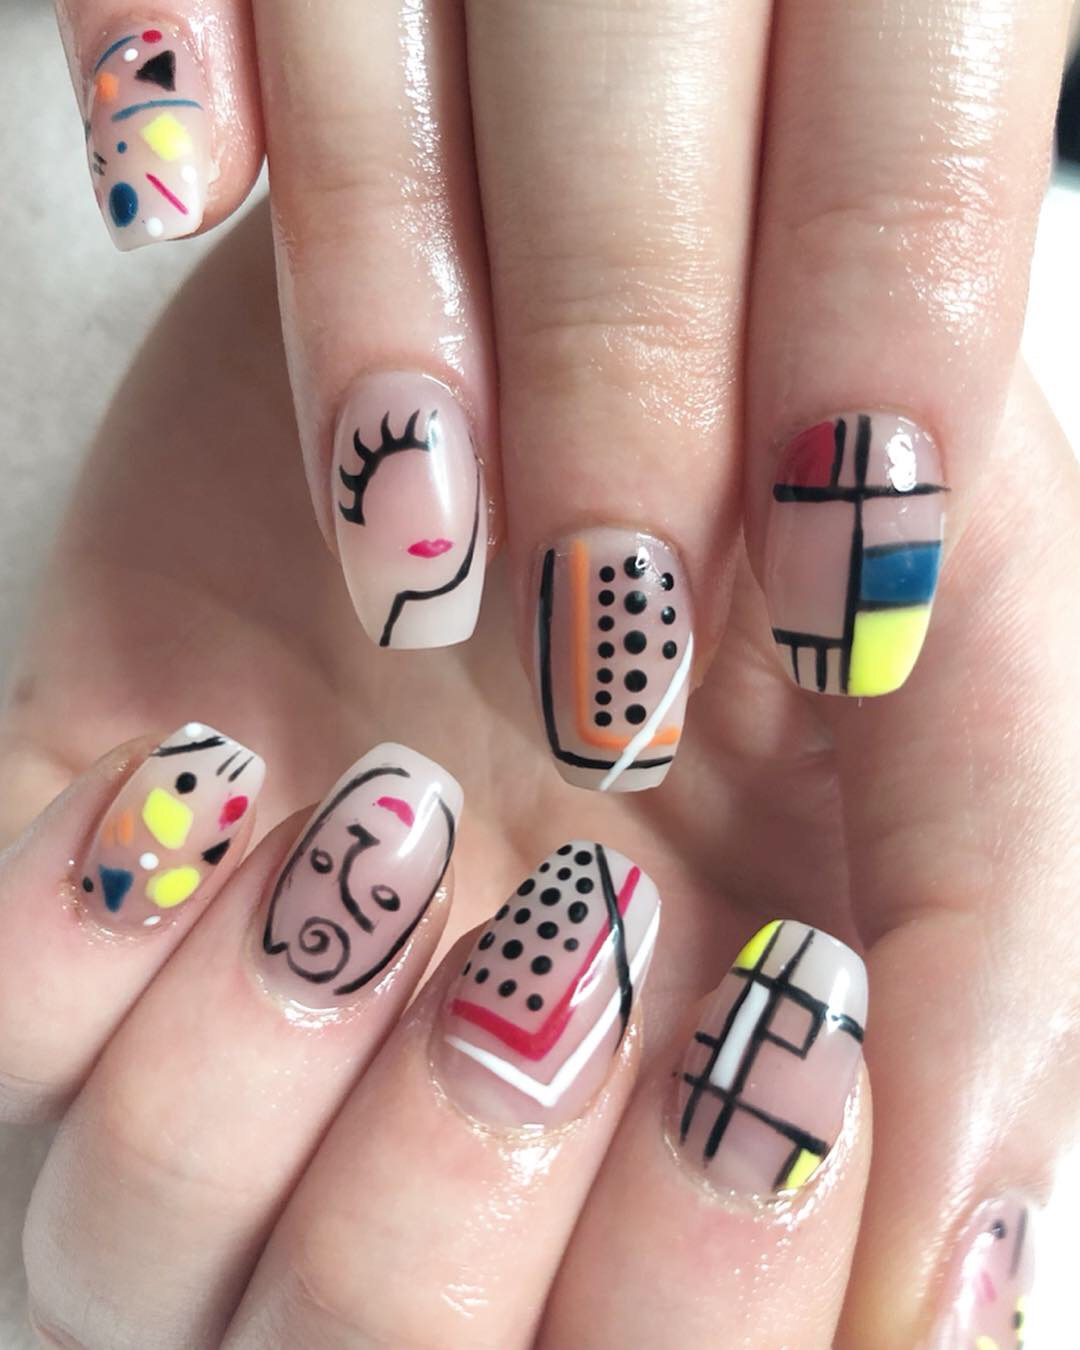 Day 102: Pop Art Faces and Baby Boomer Nail Art